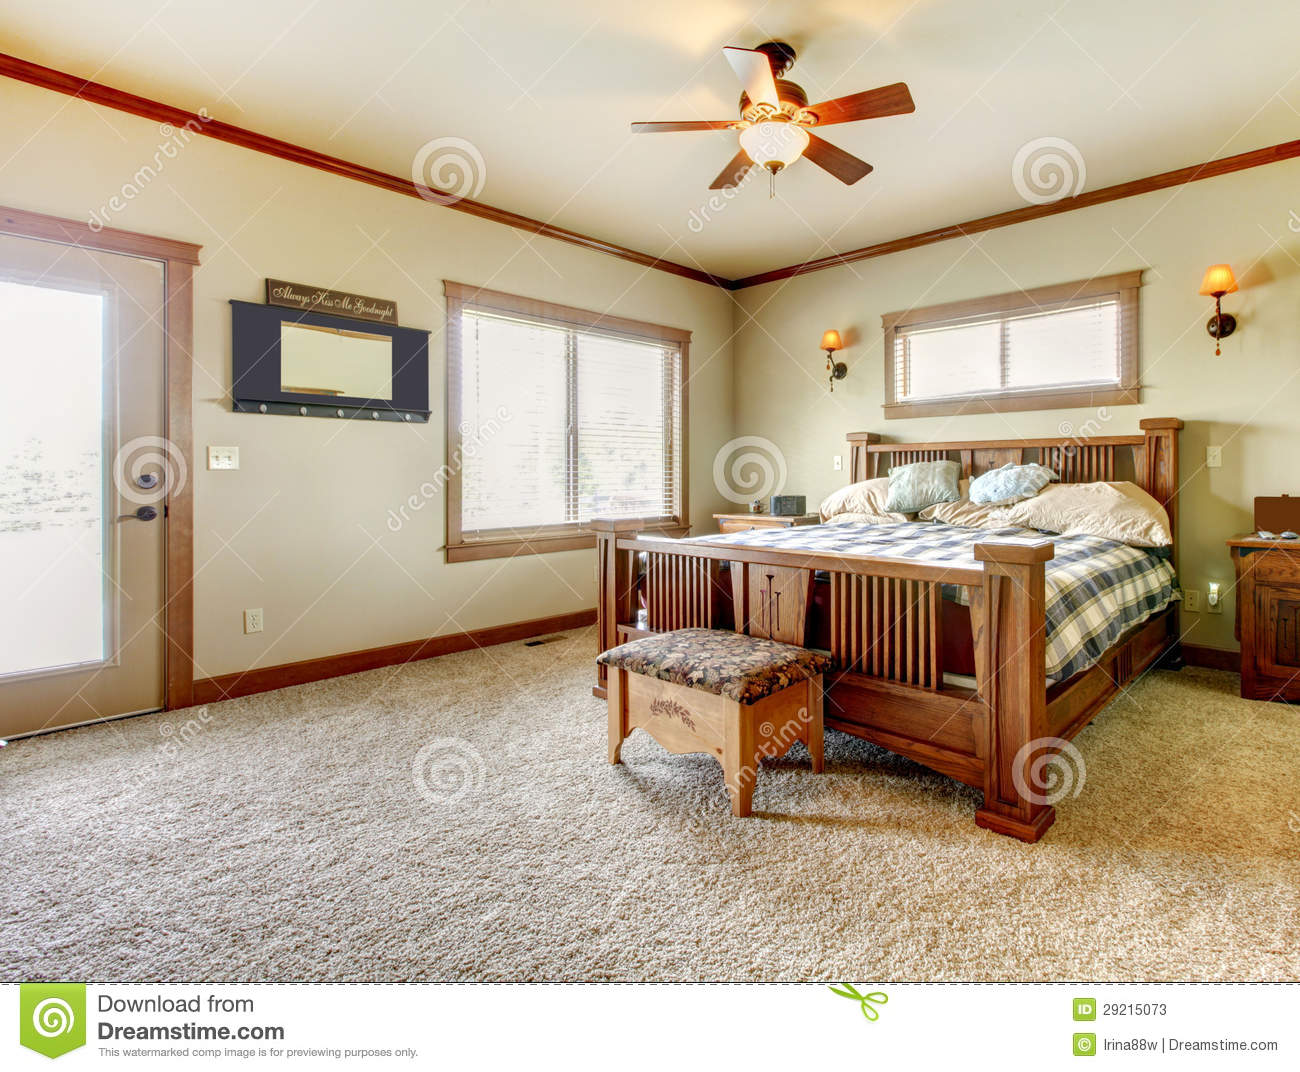 royalty free stock photo - Carpet Bedroom